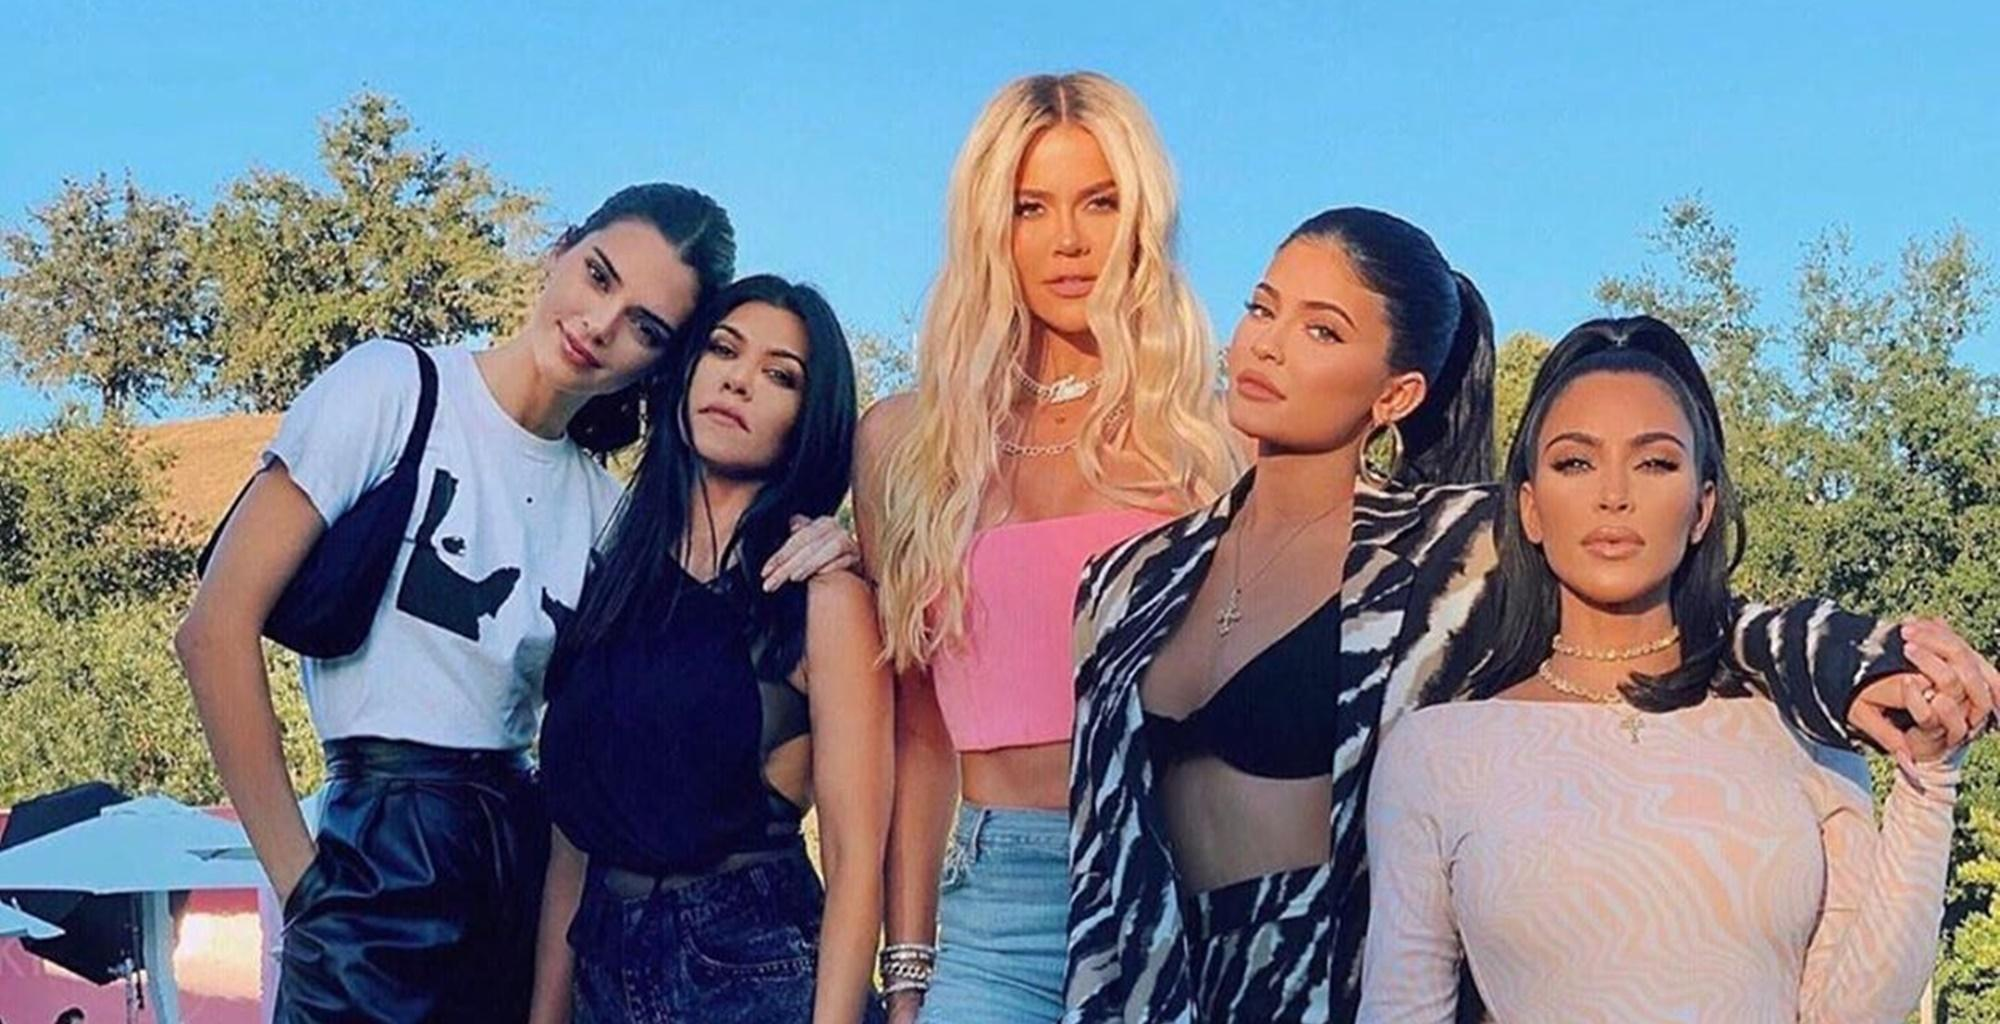 Khloe Kardashian Has Trouble Resisting Tristan Thompson's Private Gestures And Her Family Is Worried